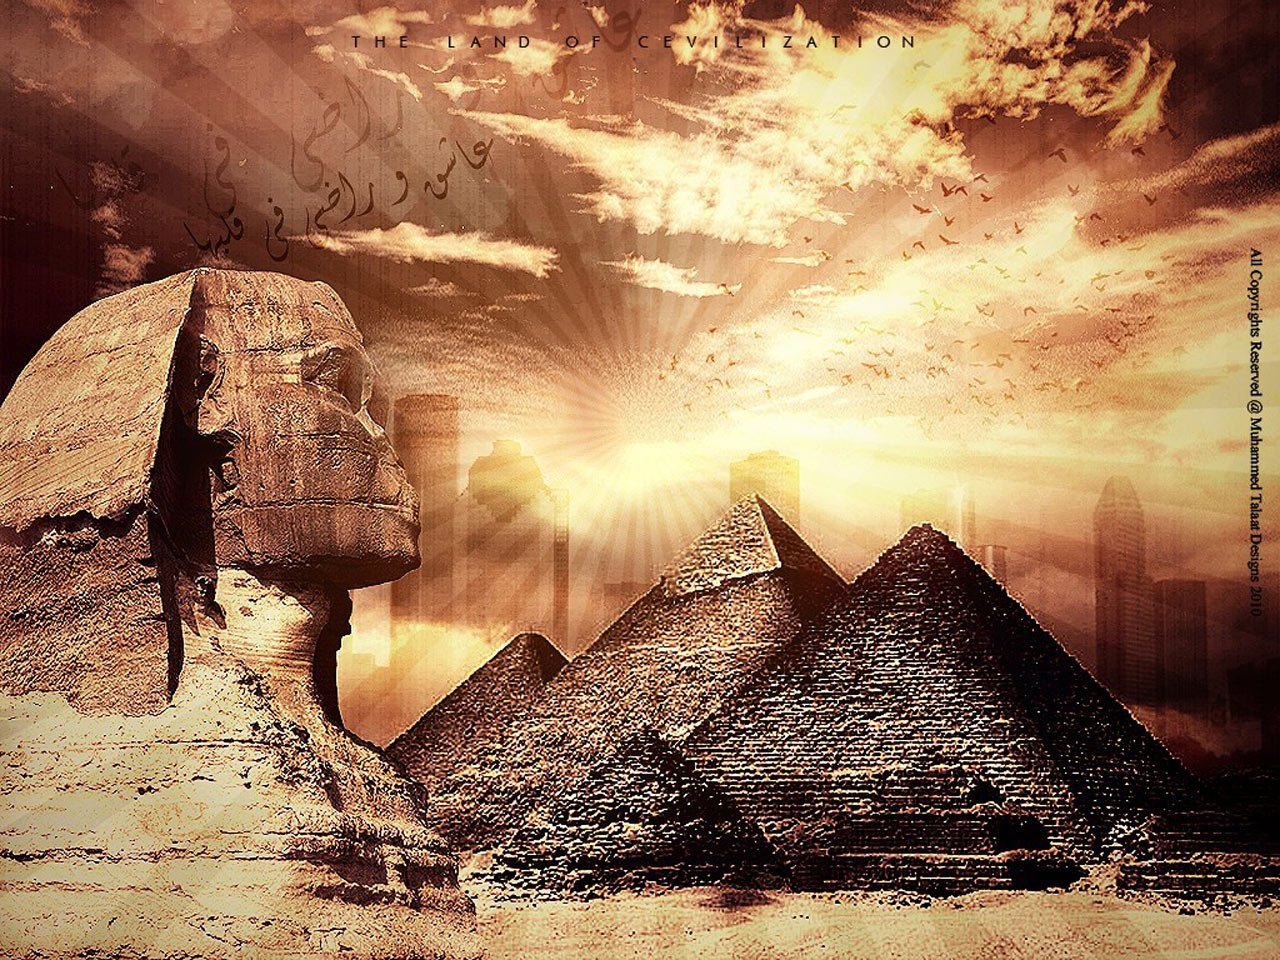 Free Wallpapers - Egypt Monuments 1280x960 wallpaper